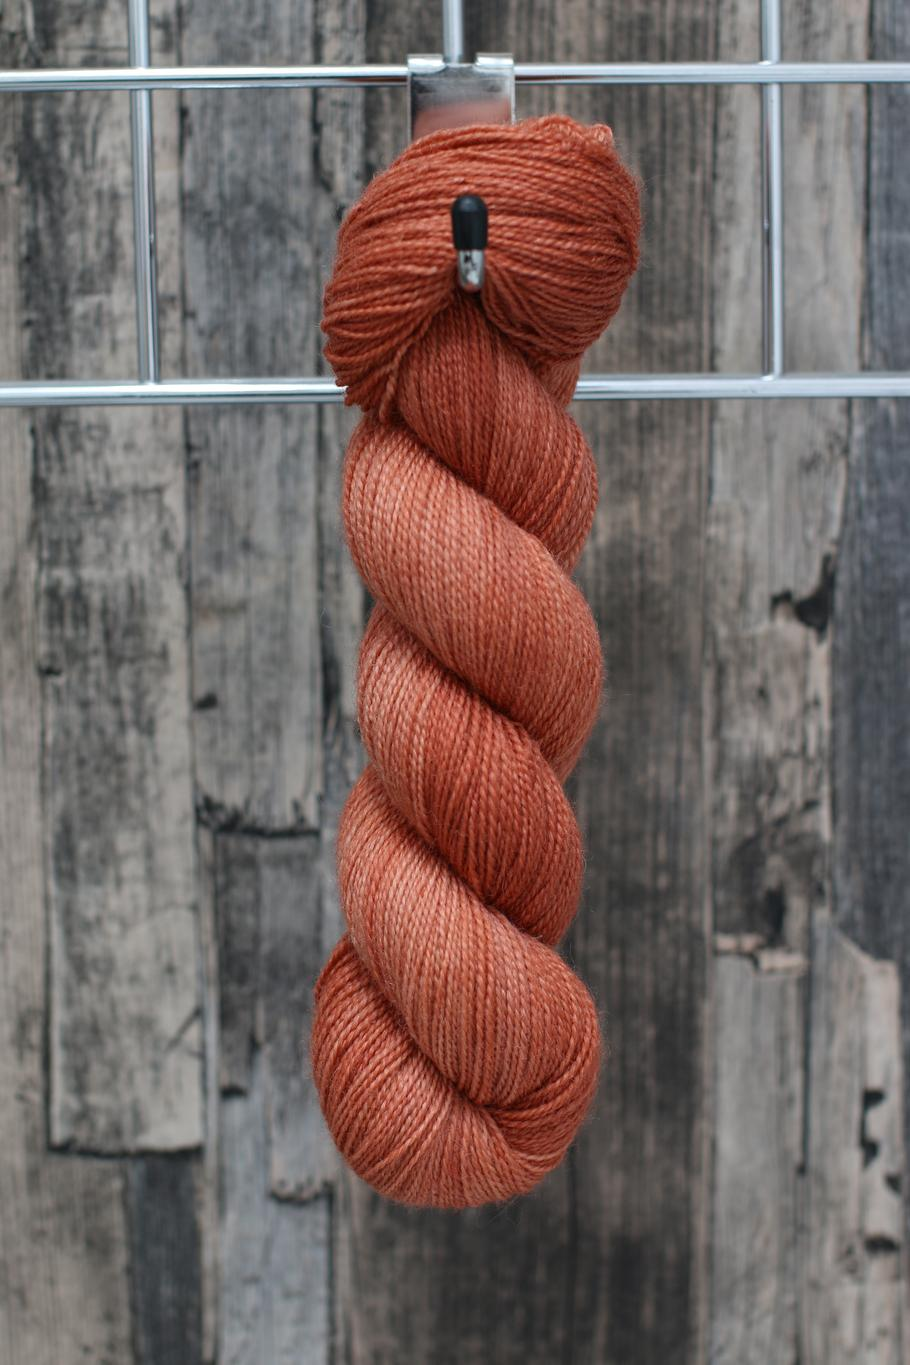 A single skein of yarn hanging from a hook in a variegated shade of soft orange